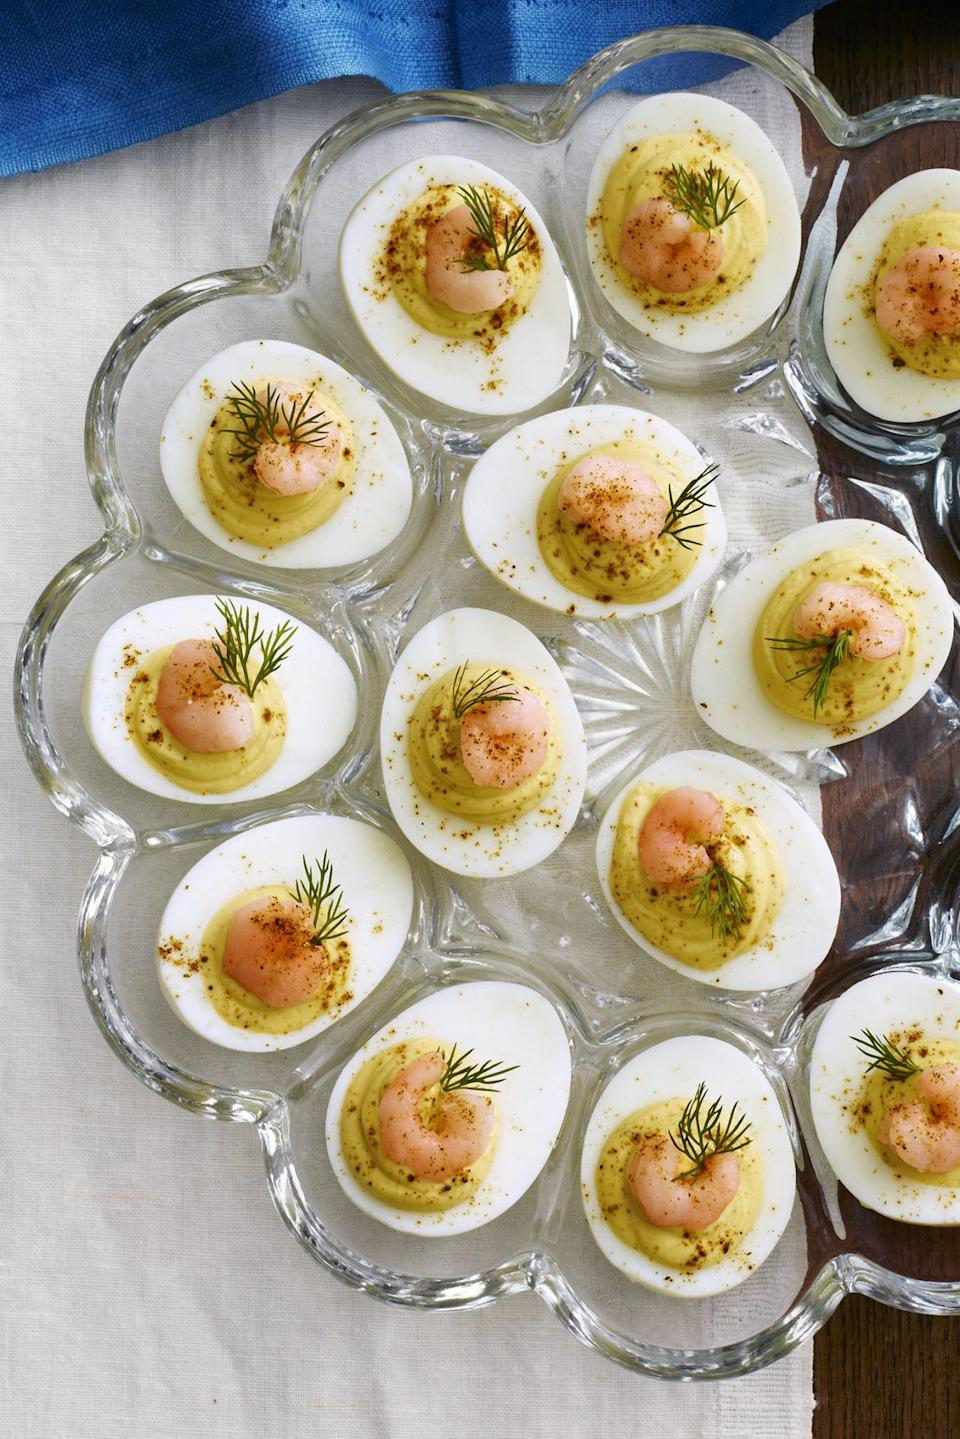 """<p>Just a dash of Old Bay seasoning gives these treats a ton of flavor. </p><p><a href=""""http://www.countryliving.com/food-drinks/recipes/a4975/deviled-eggs-old-bay-shrimp-recipe-clx0414/"""" rel=""""nofollow noopener"""" target=""""_blank"""" data-ylk=""""slk:Get the recipe."""" class=""""link rapid-noclick-resp""""><strong>Get the recipe.</strong></a></p>"""